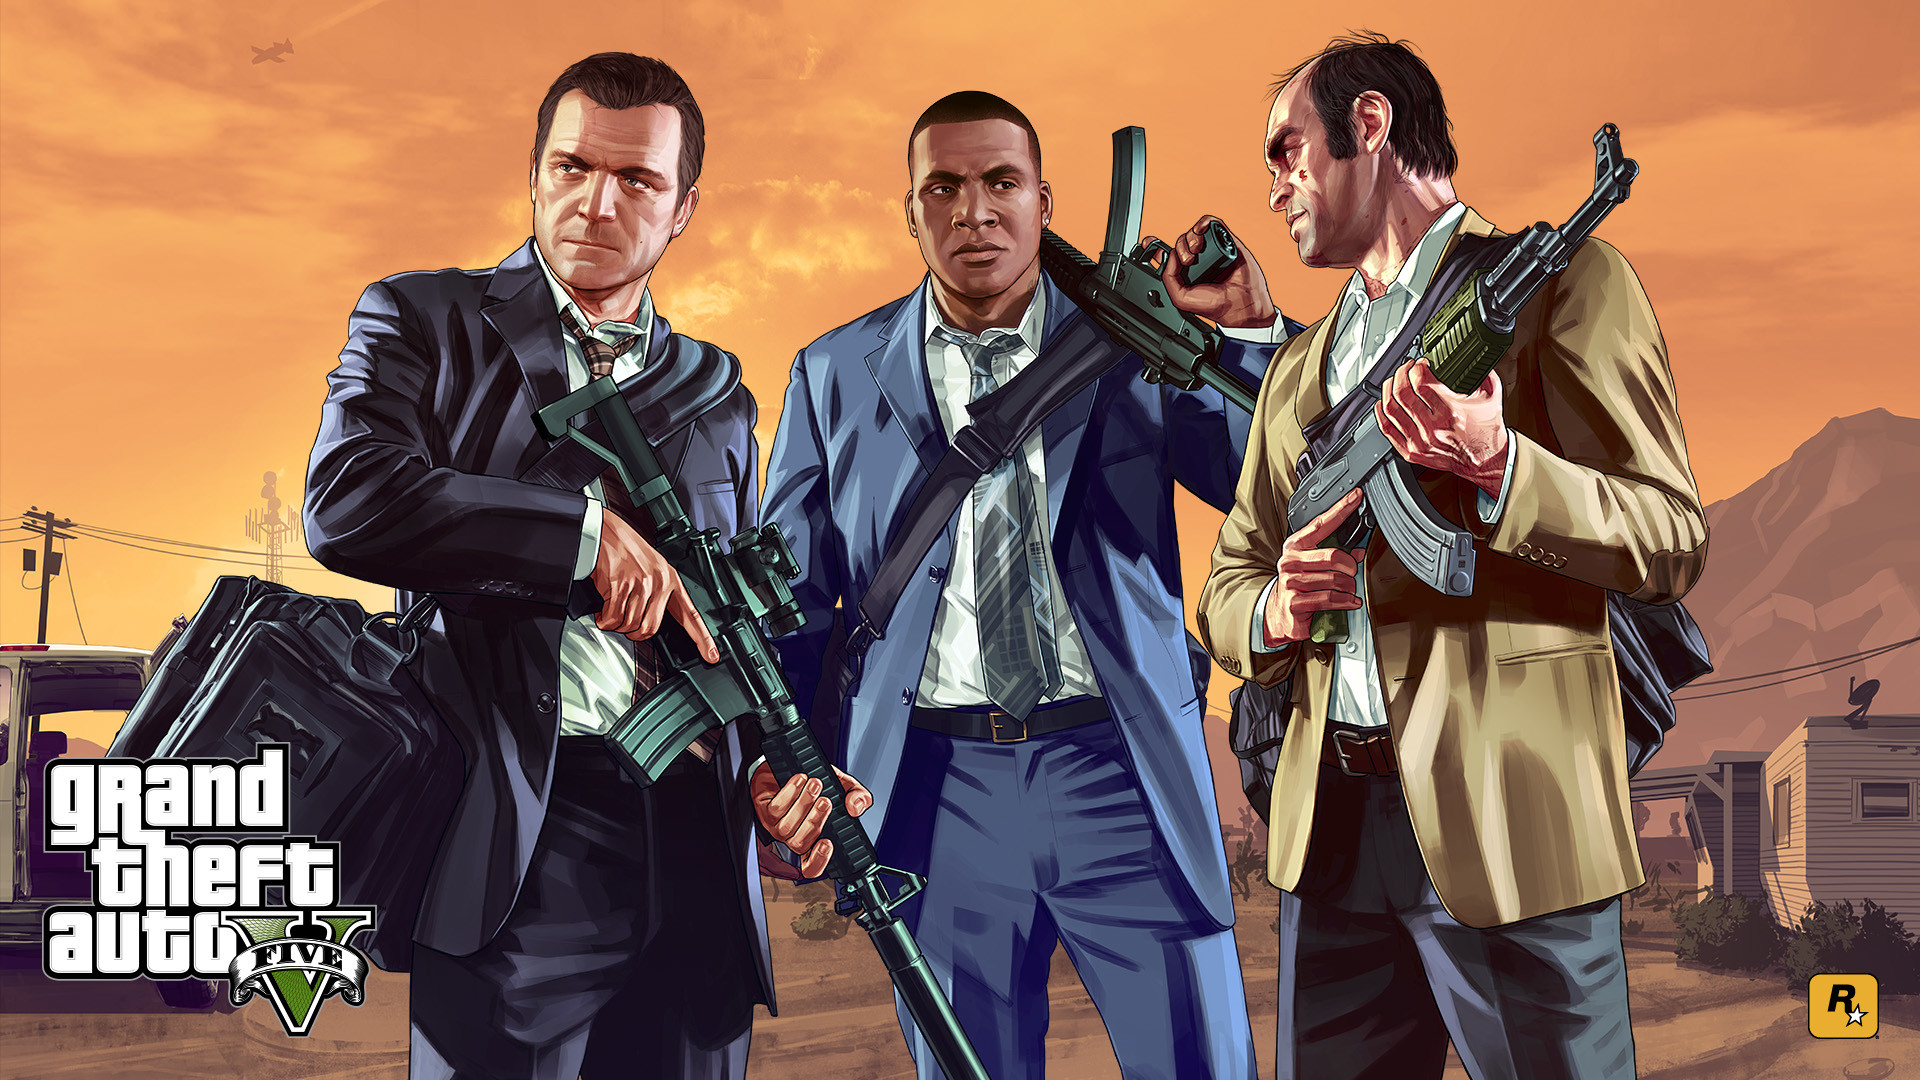 Wallpaper Gta Collection For Free Download | HD Wallpapers | Pinterest | Hd  wallpaper, Wallpaper and Wallpaper backgrounds